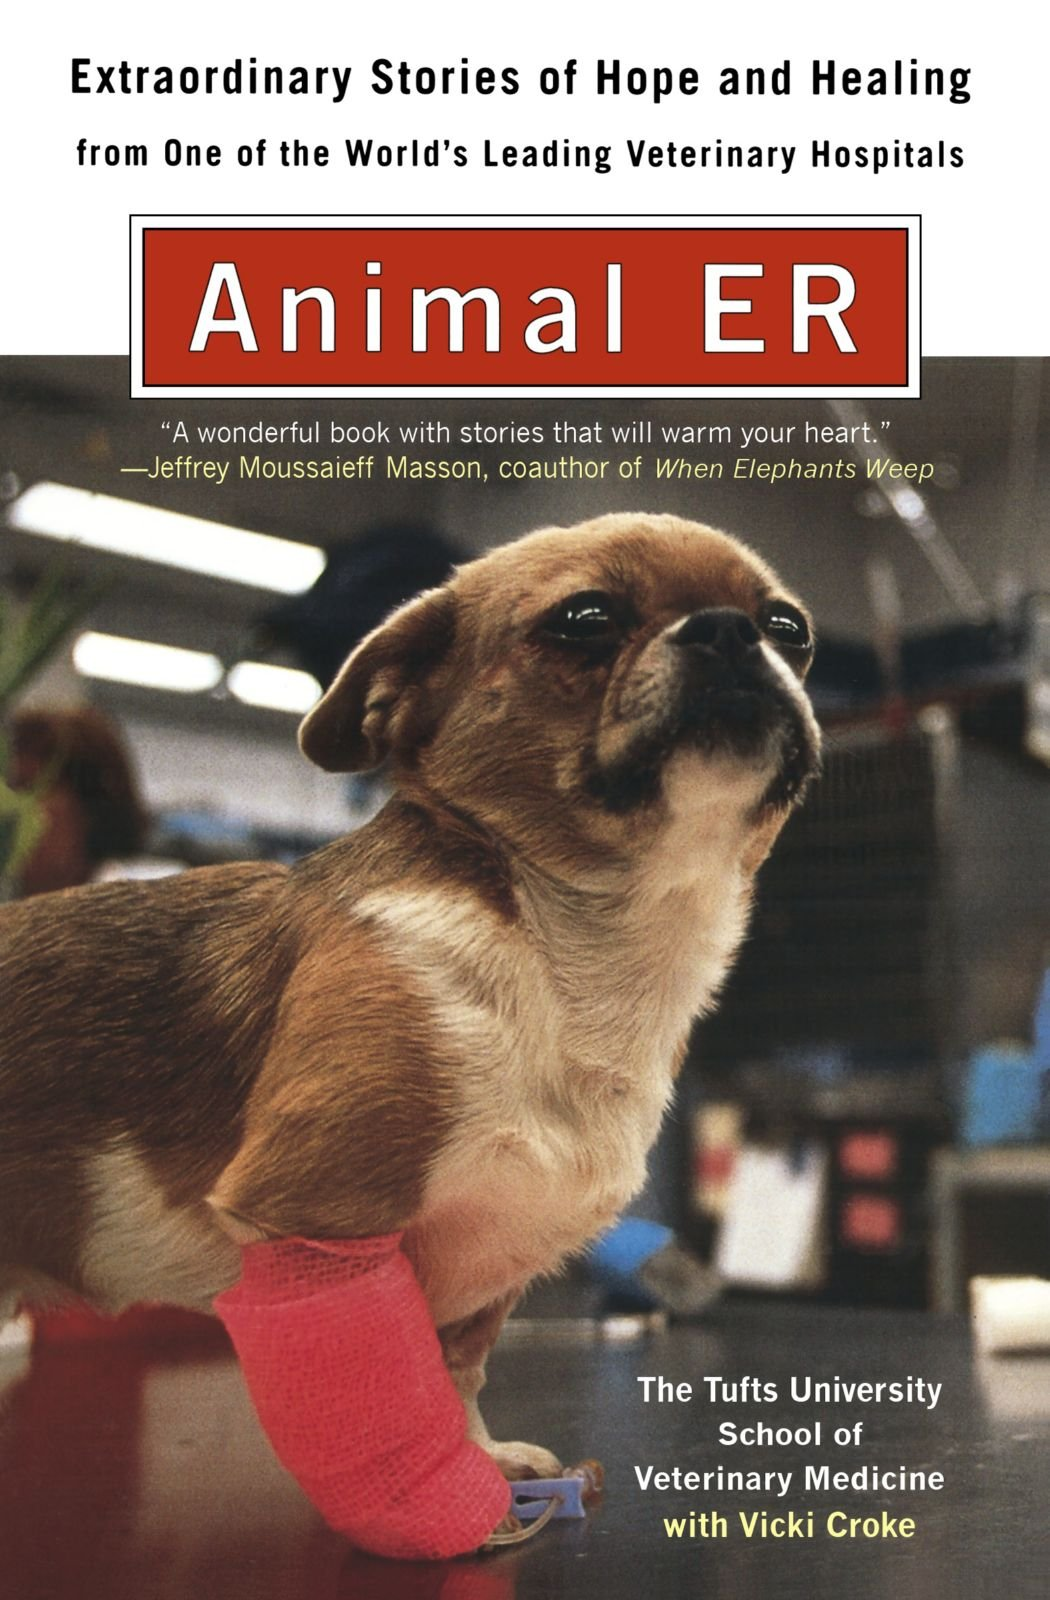 Animal ER: Extraordinary Stories of Hope and Healing from one of the world's leading veterinary hospitals by Plume (Image #1)